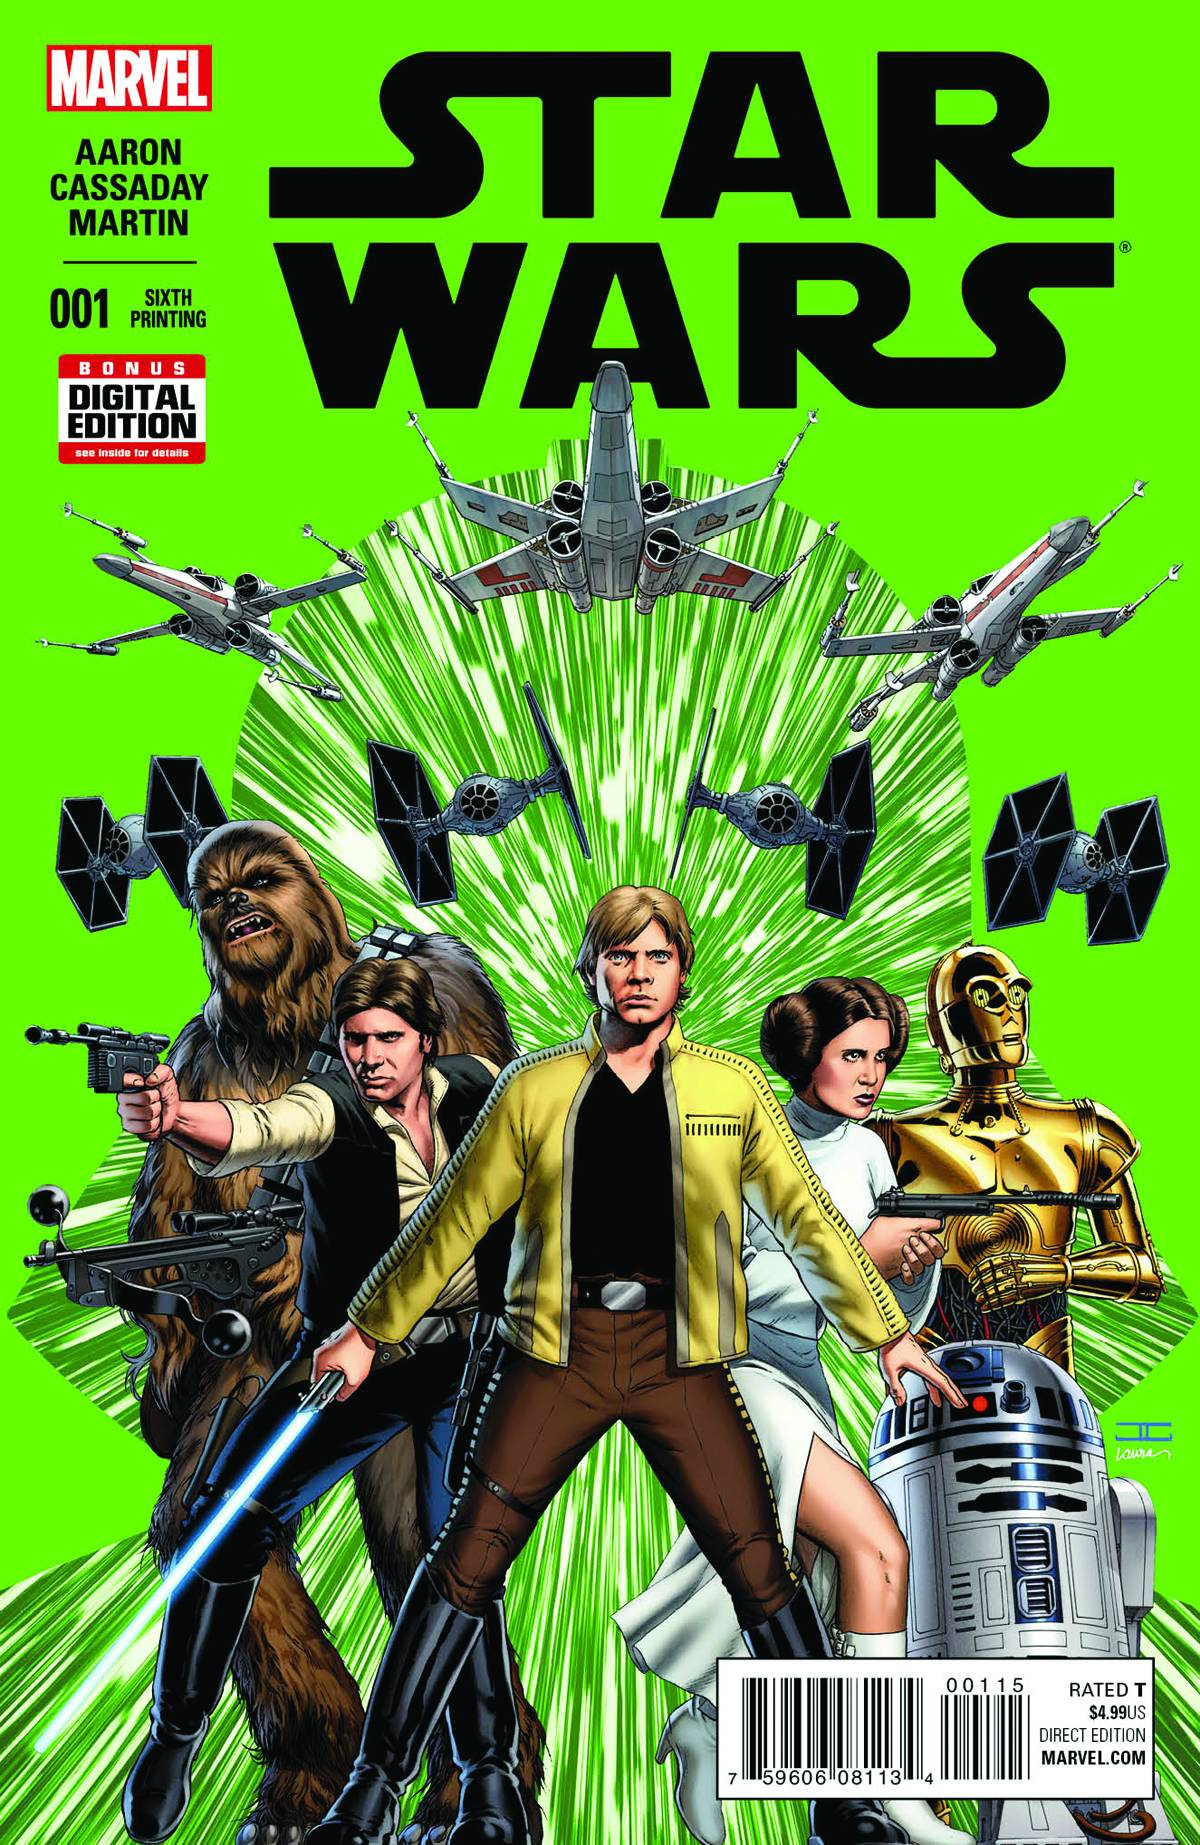 Star Wars #1 (6th Printing) (08.07.2015)